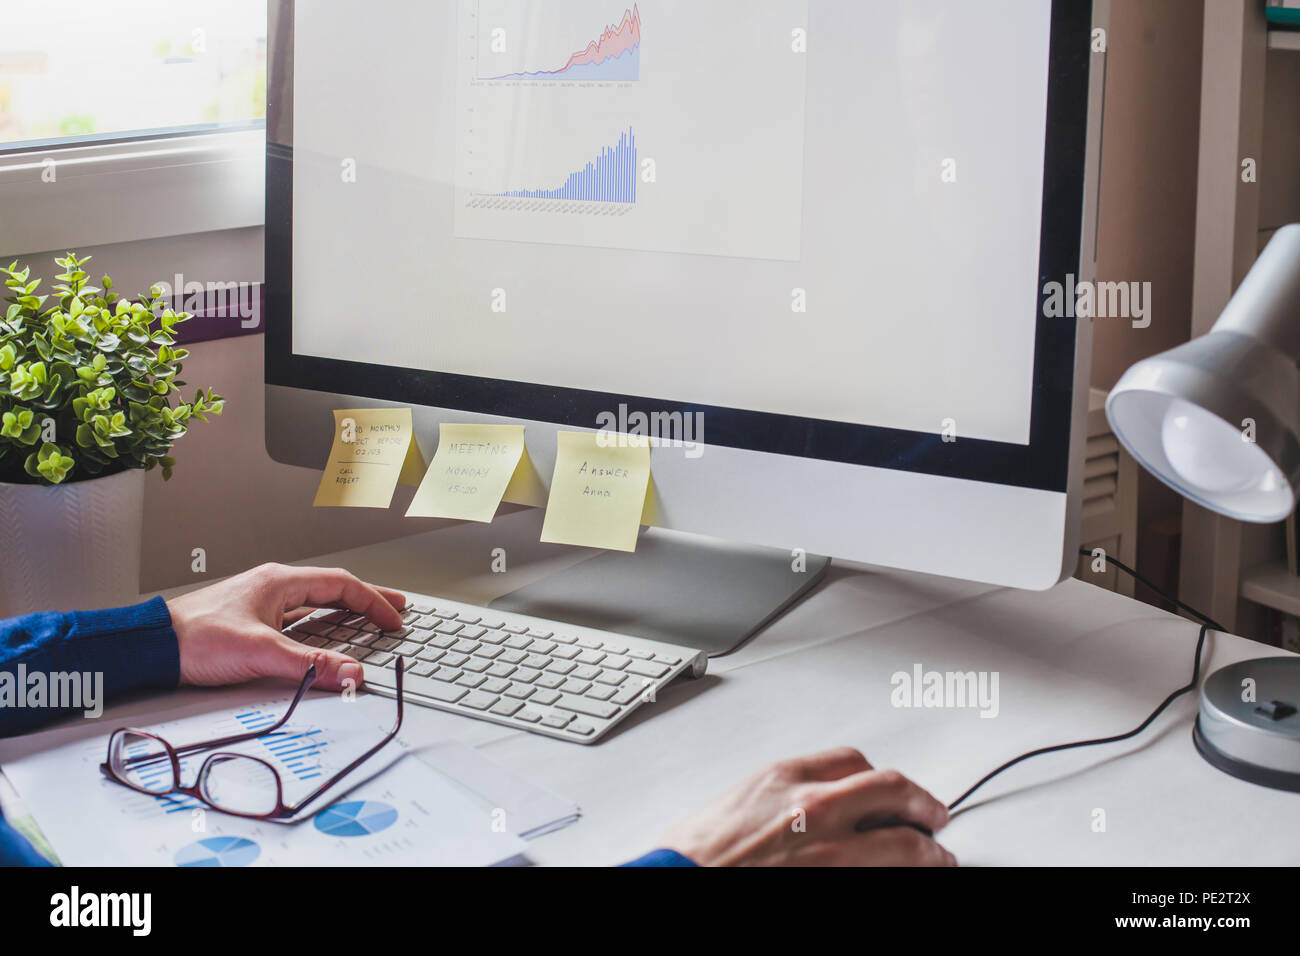 business man analyzing financial report on screen of computer, finance analytics of company performance Stock Photo